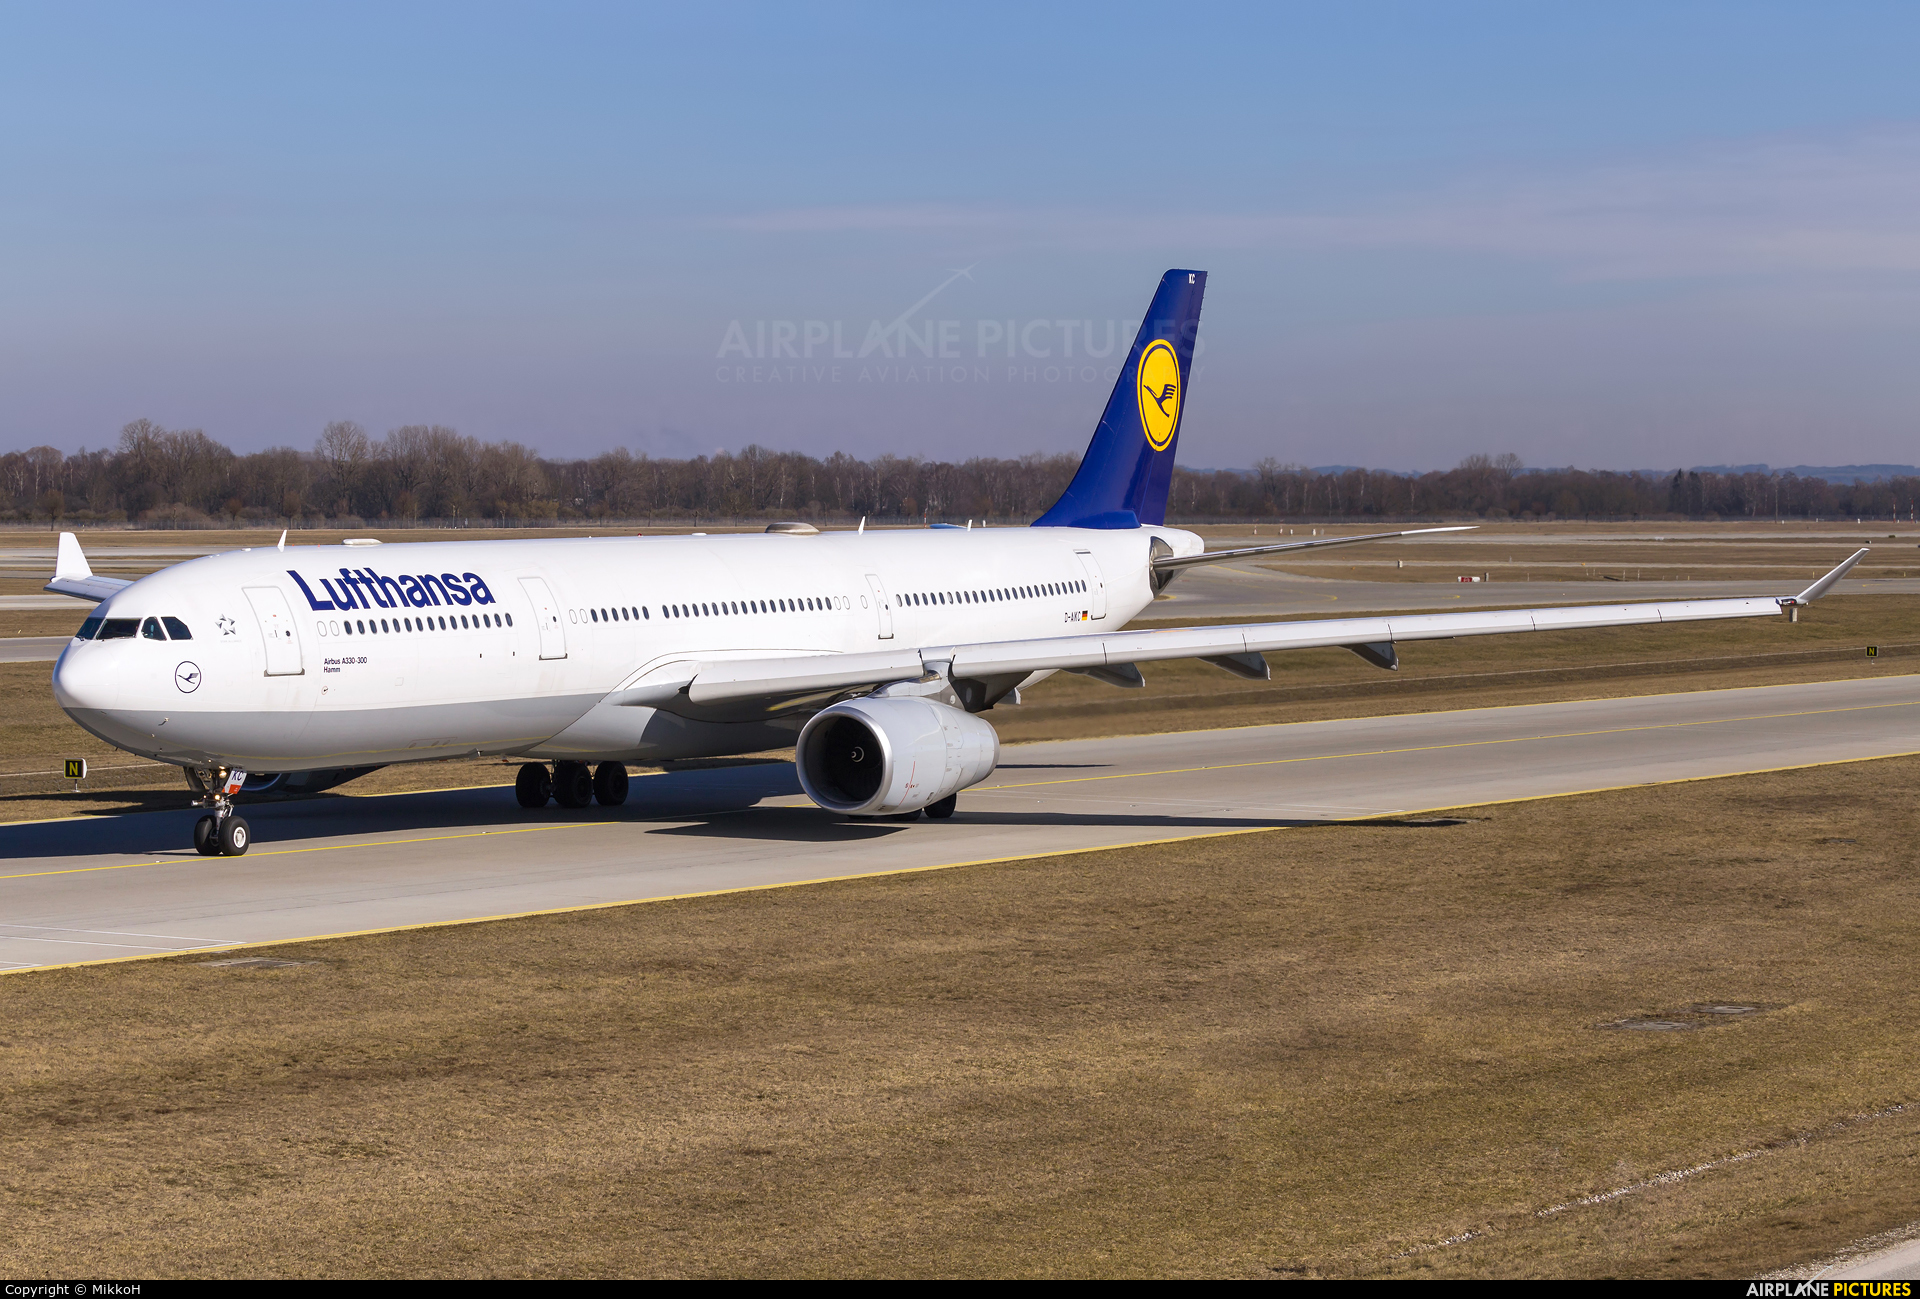 Lufthansa D-AIKC aircraft at Munich